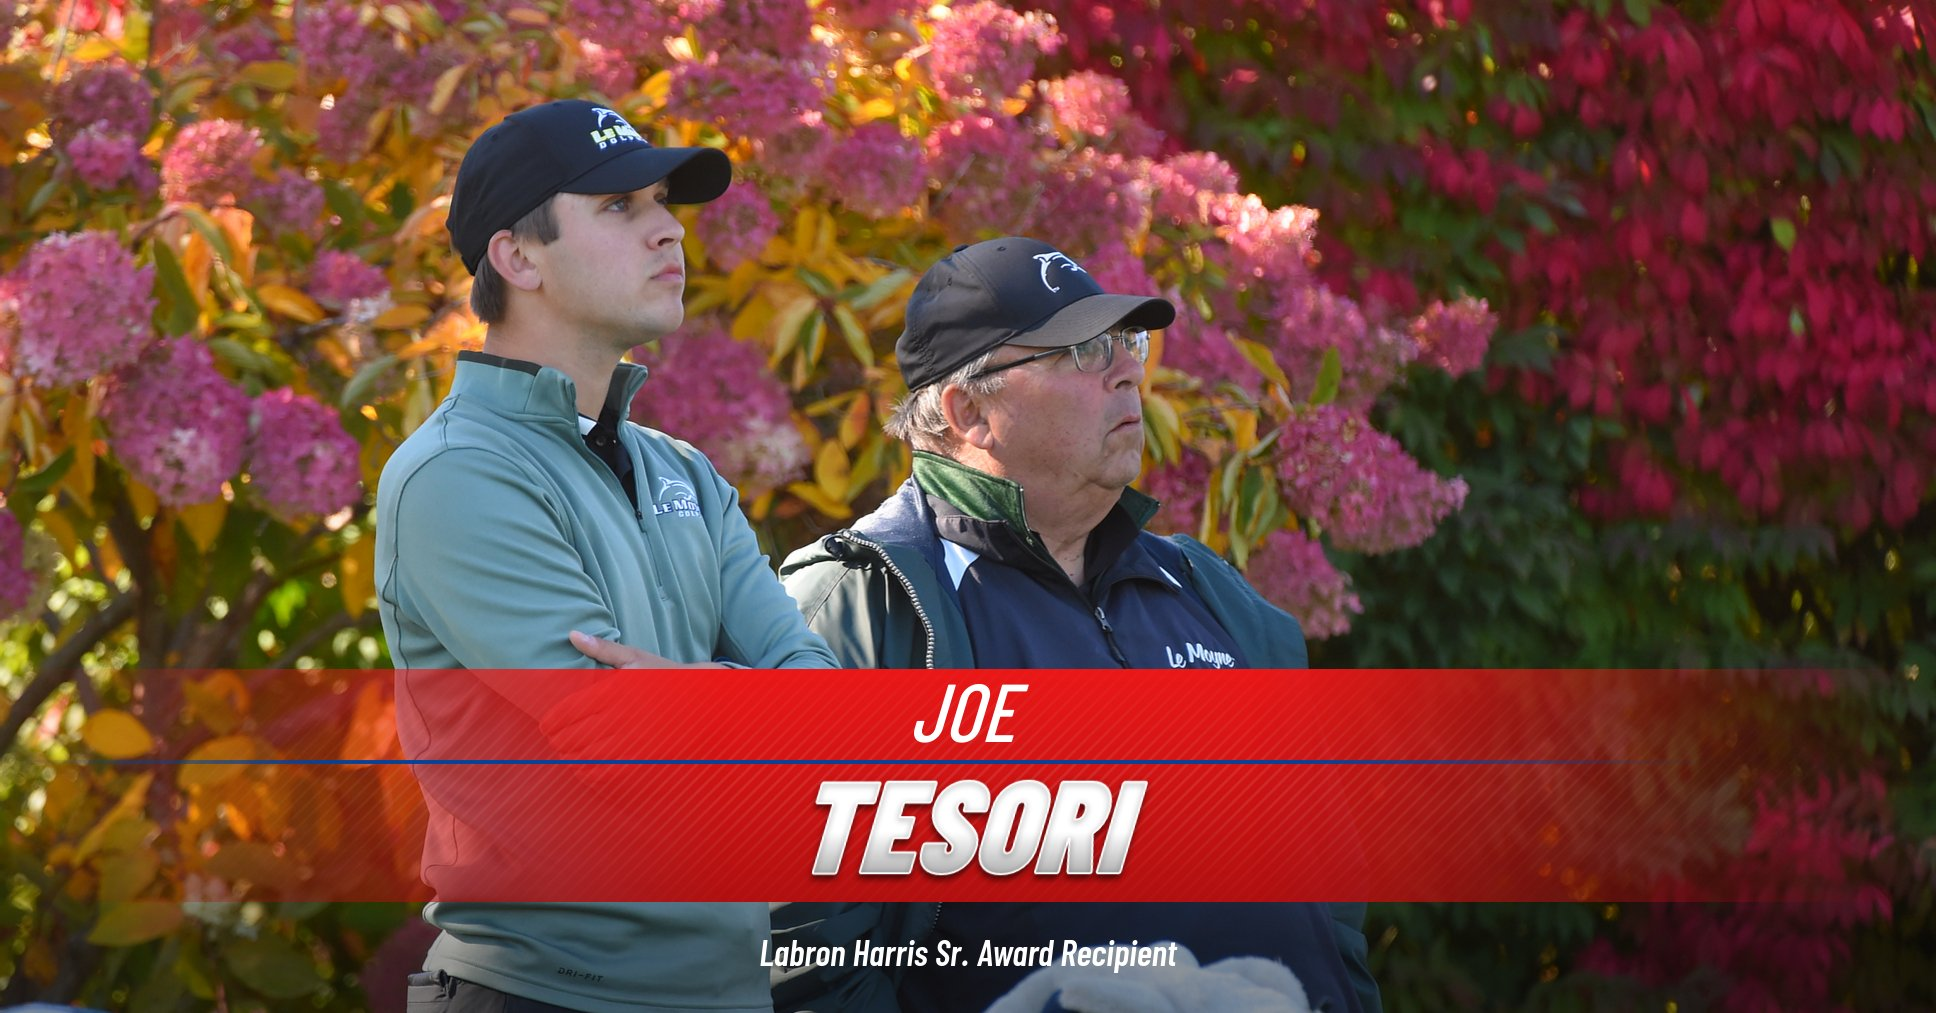 Joe Tesori of Le Moyne College Named Labron Harris Sr. Award Recipient